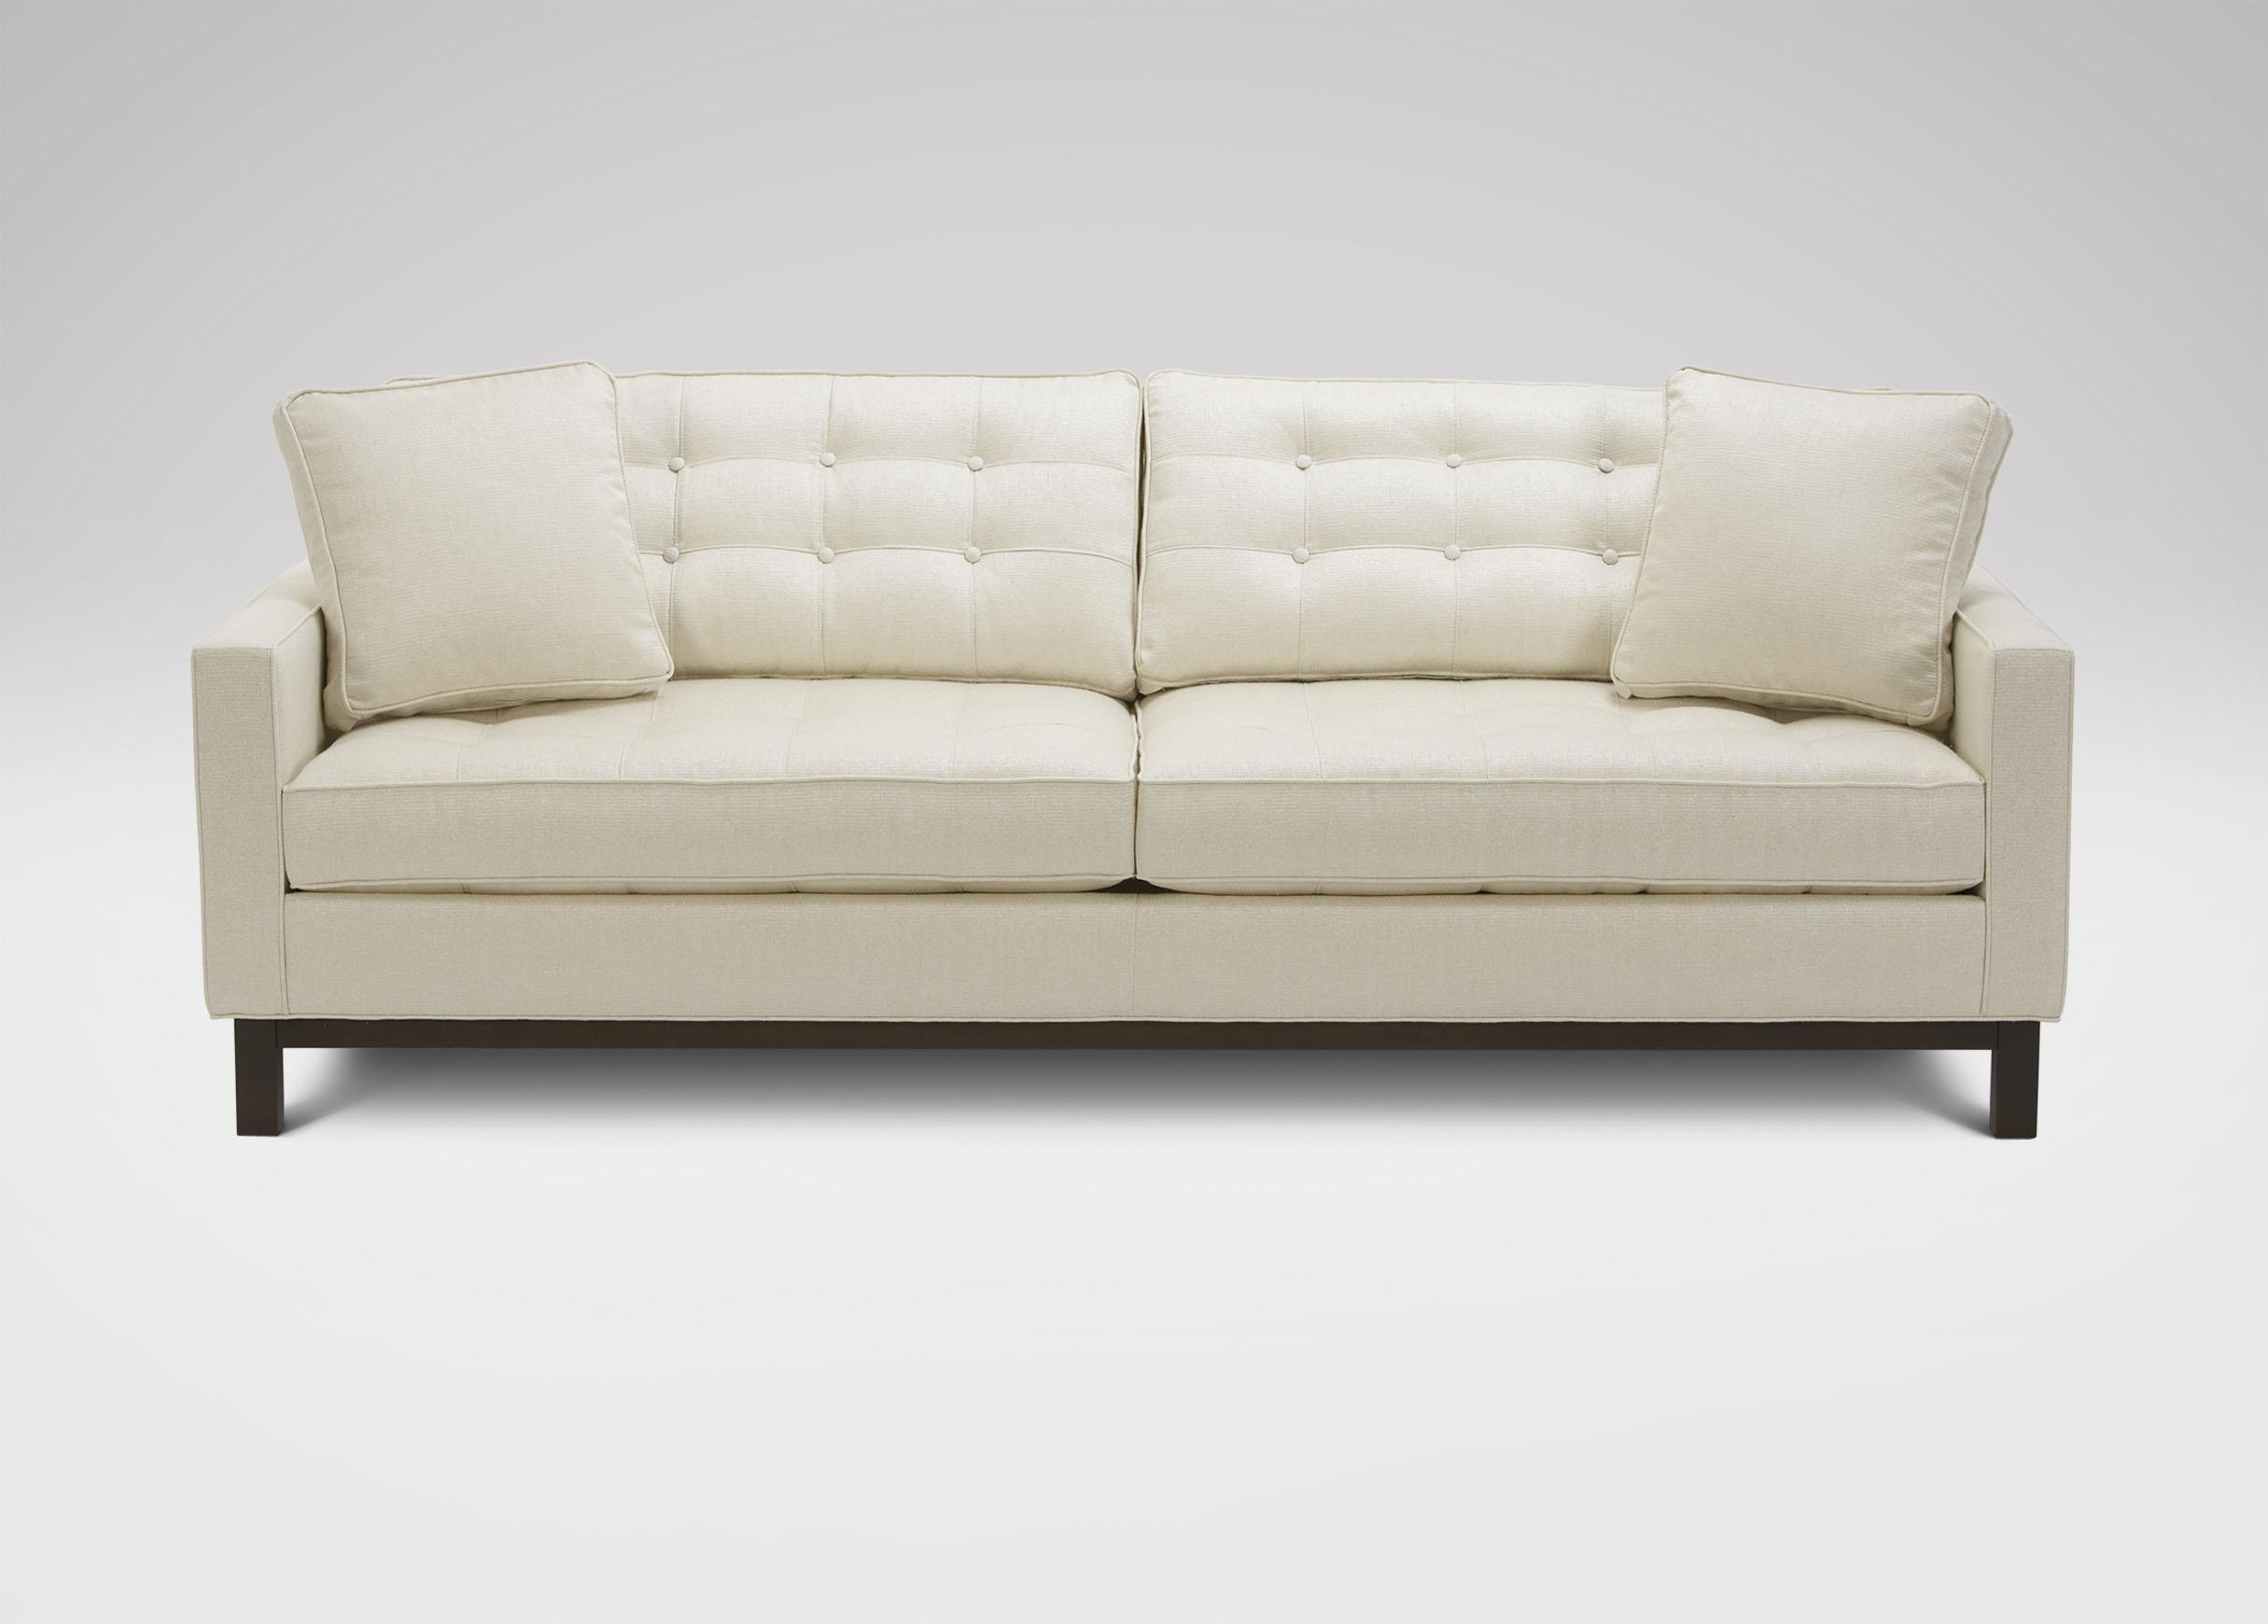 Furniture: Ethan Allen Sectional Sofas | Ethan Allen Furniture Intended For Chadwick Sofas (Image 16 of 20)